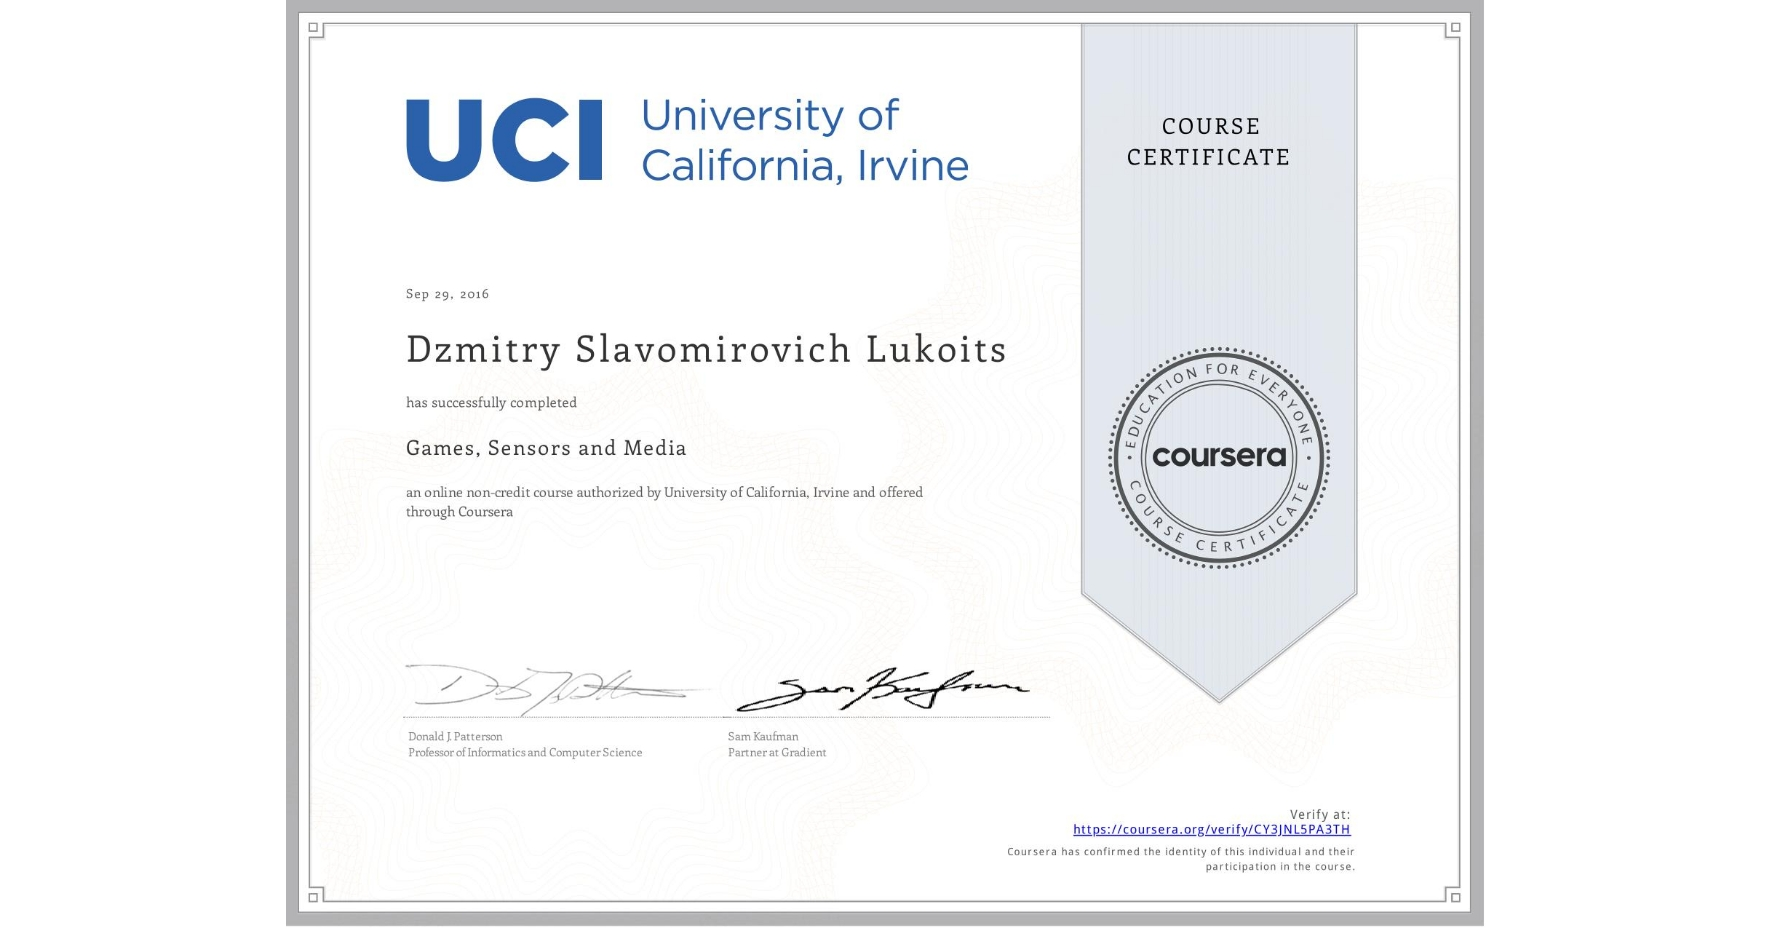 View certificate for Dzmitry Slavomirovich Lukoits, Games, Sensors and Media, an online non-credit course authorized by University of California, Irvine and offered through Coursera